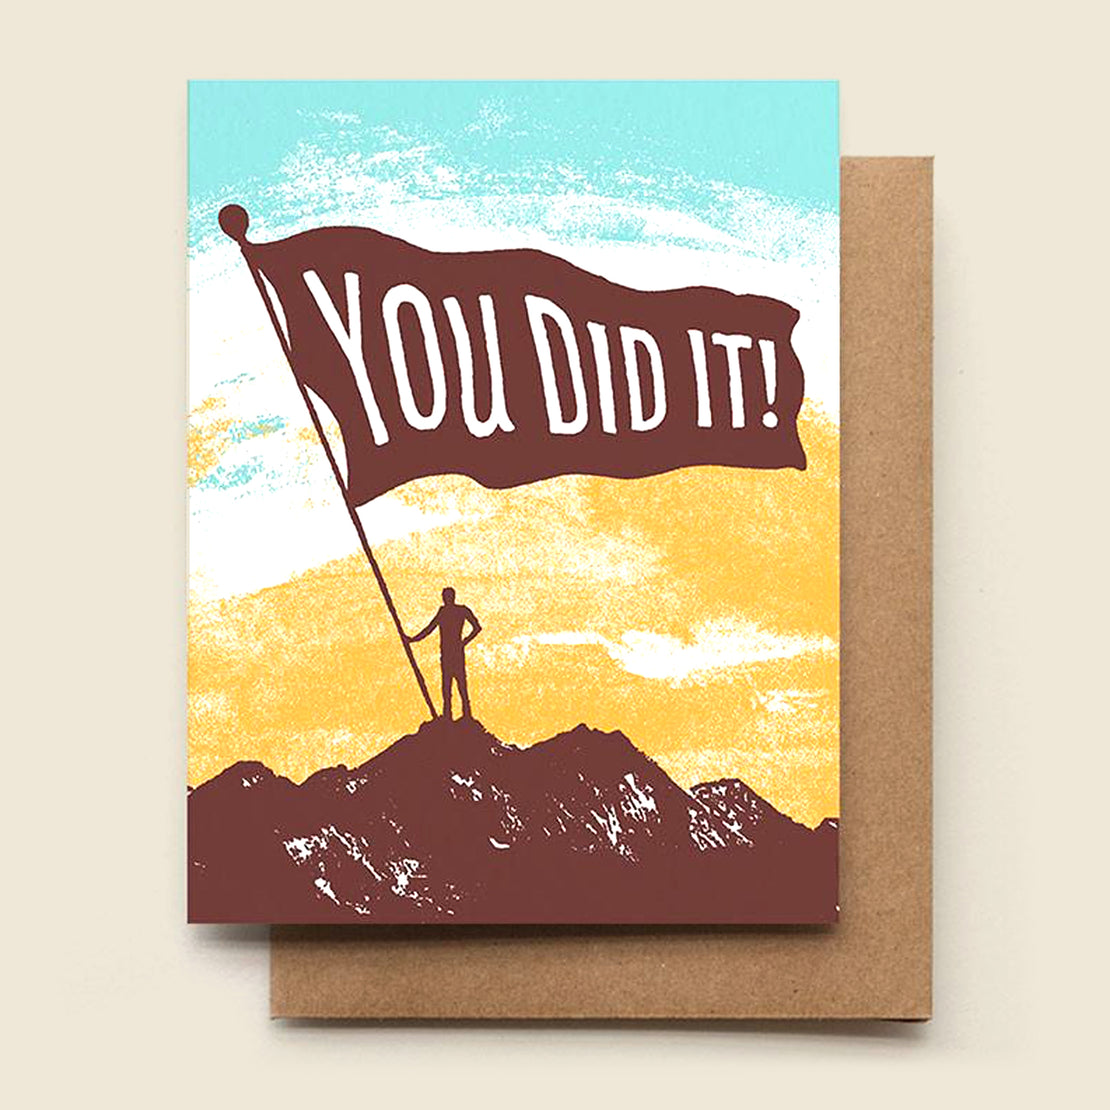 Paper Goods Congratulations Card - You Did It!